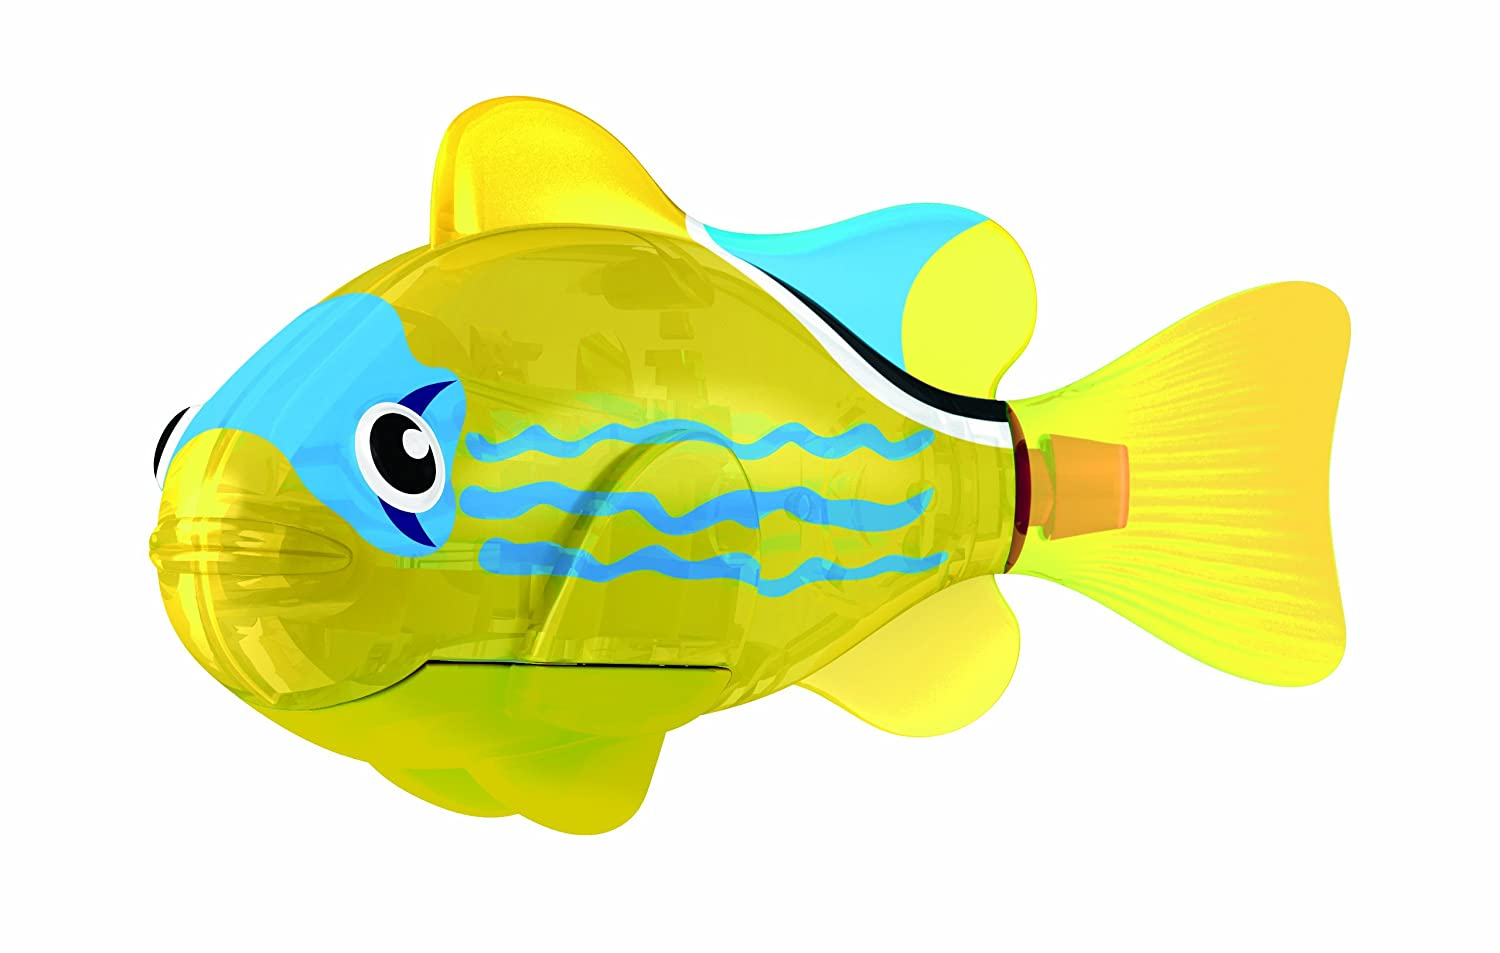 Goliath 32548024 - Robo Fish con luce LED, colore: Giallo Goliath Toys